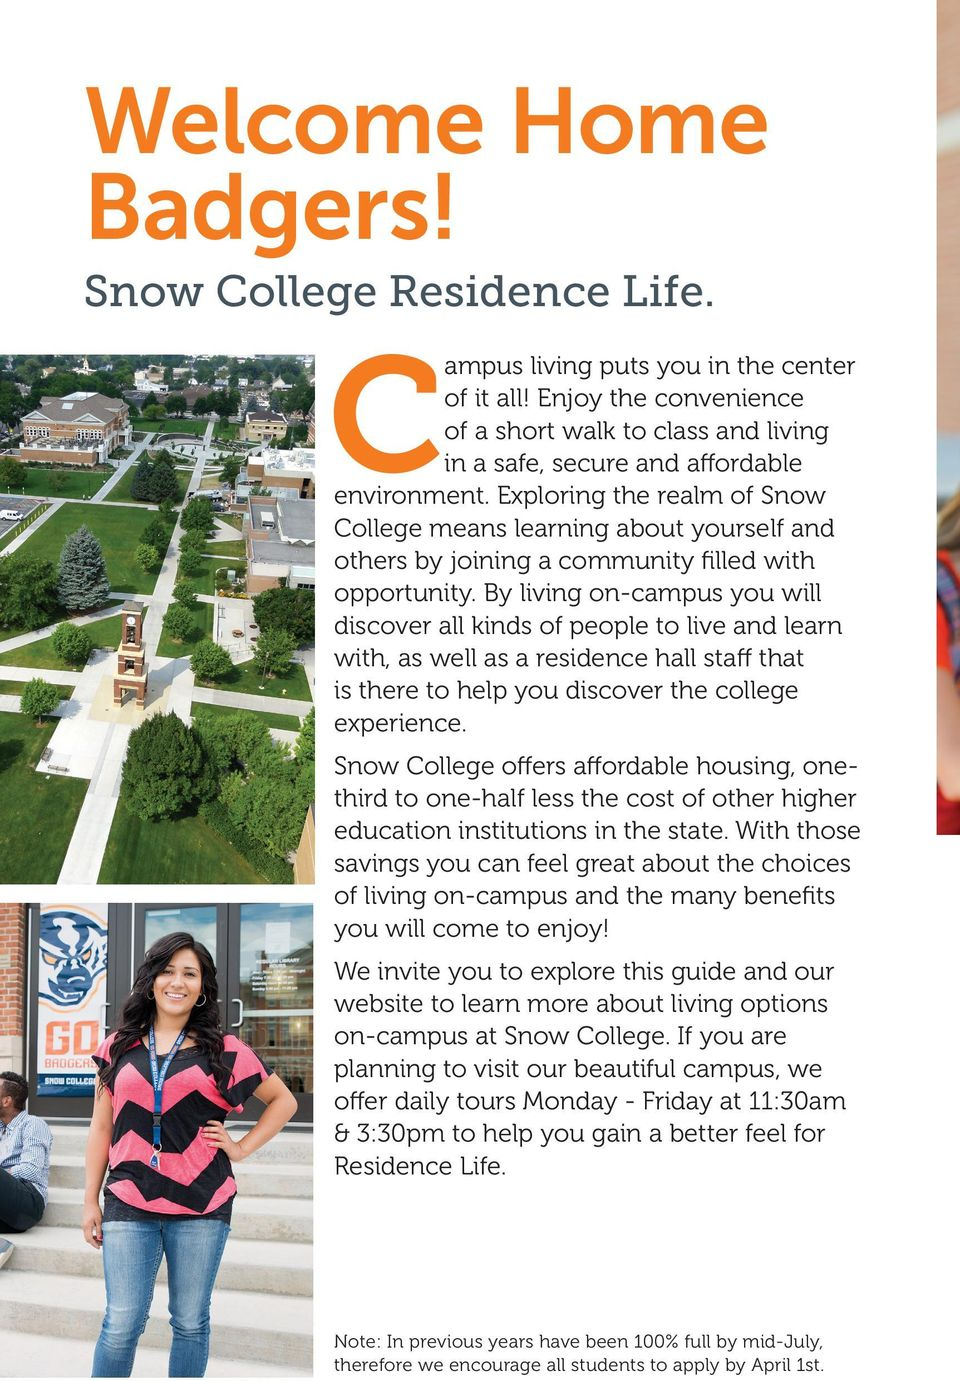 Exploring the realm of Snow College means learning about yourself and others by joining a community filled with opportunity.